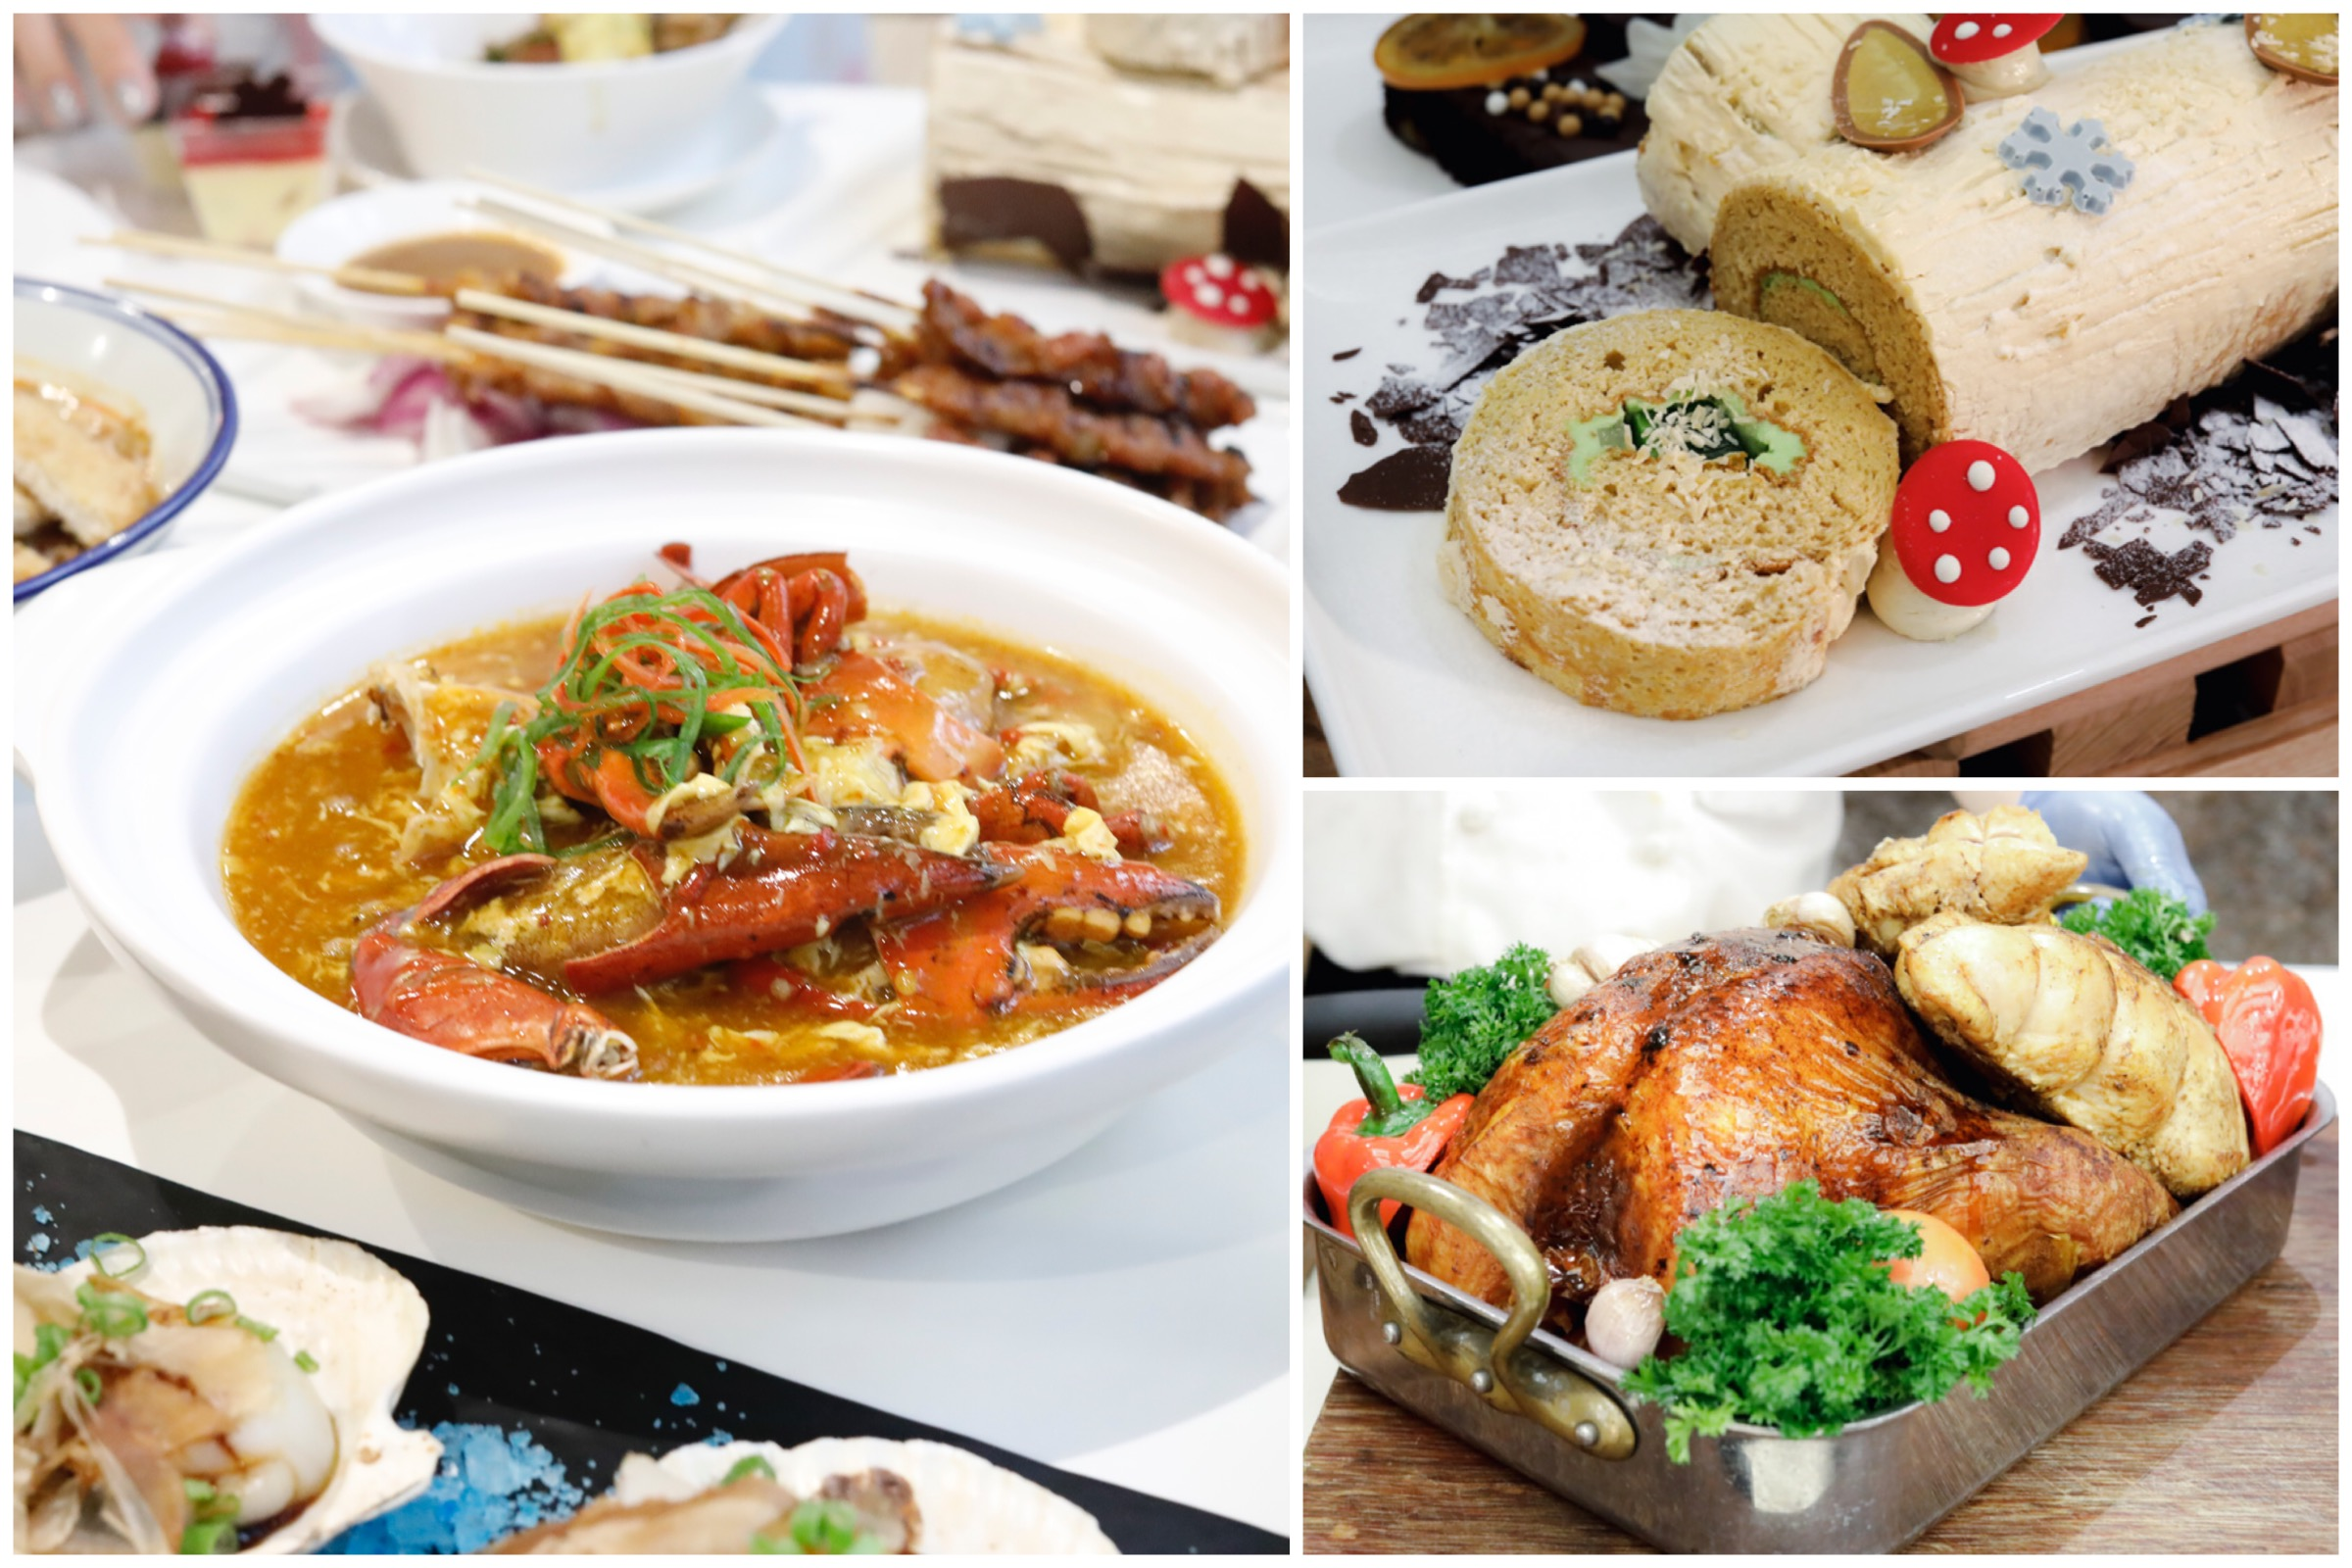 Review Buffet At Ginger Parkroyal On Beach Road: Festive Buffet With All-You-Can-Eat Crabs